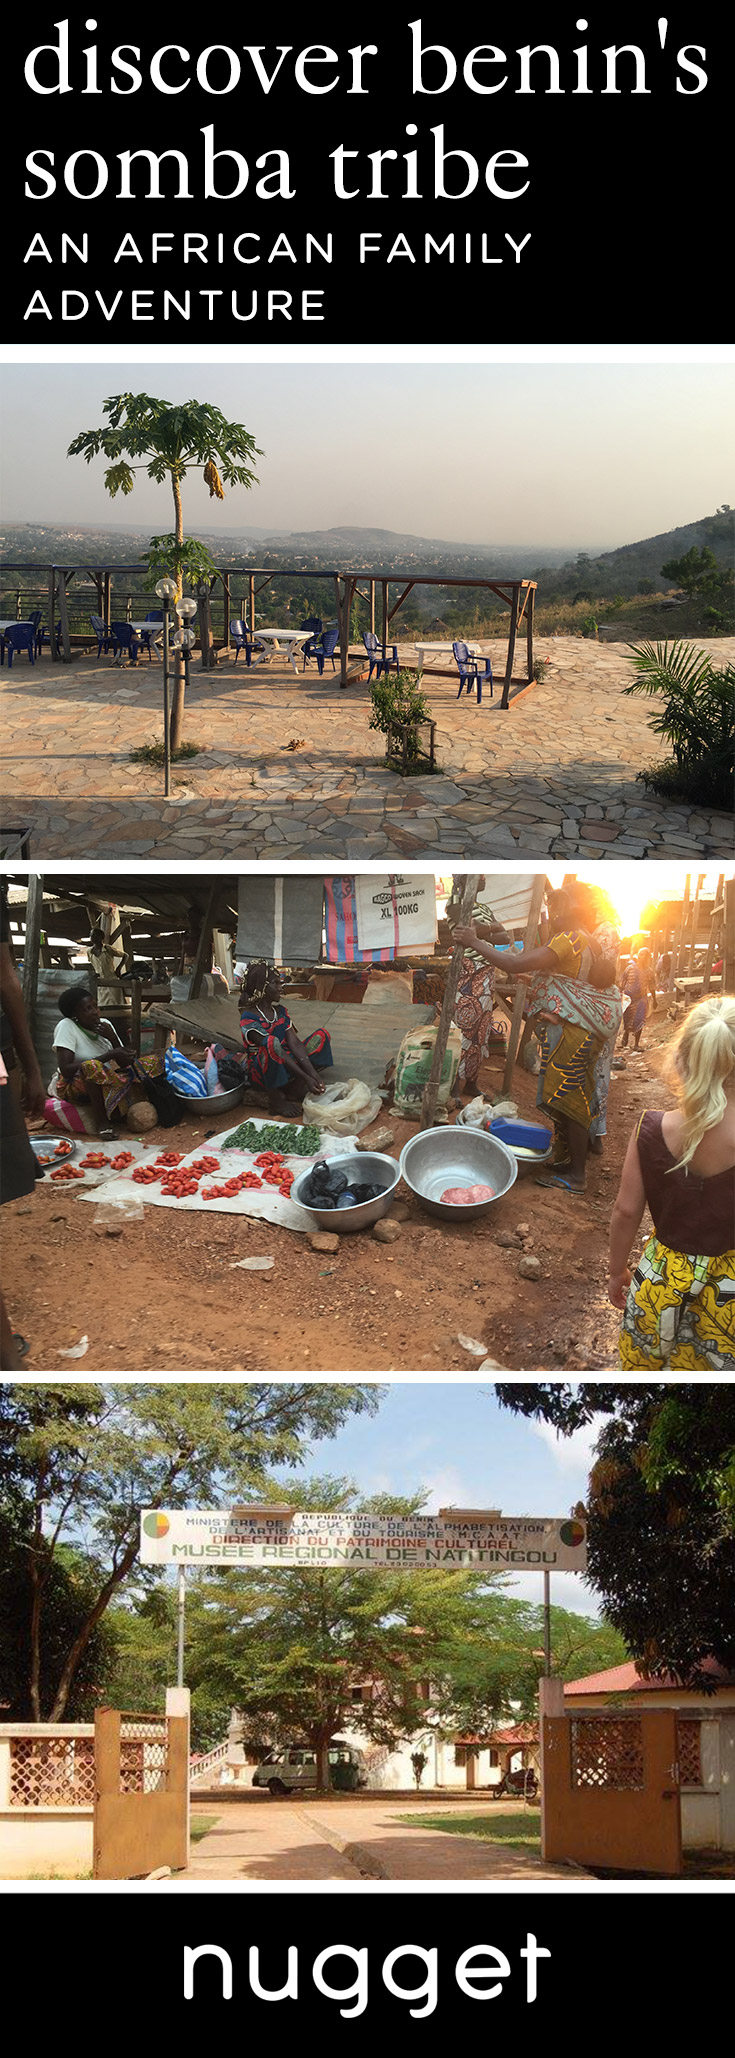 Exploring the Somba Tribe and its Culture with Kids